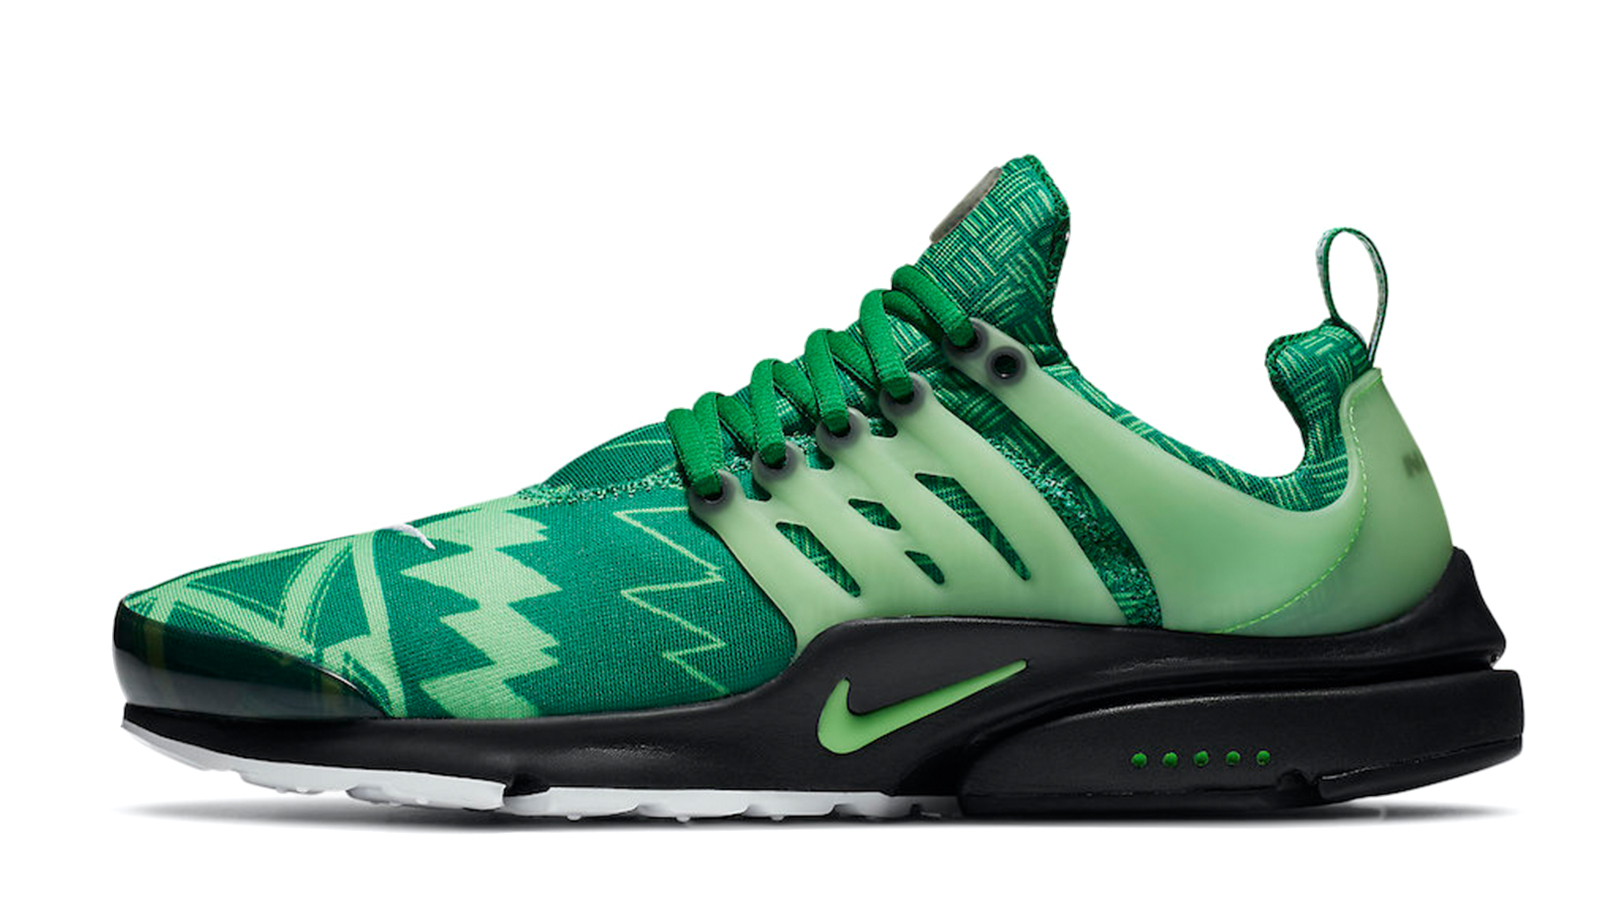 Nike Air Presto Naija CJ1229-300